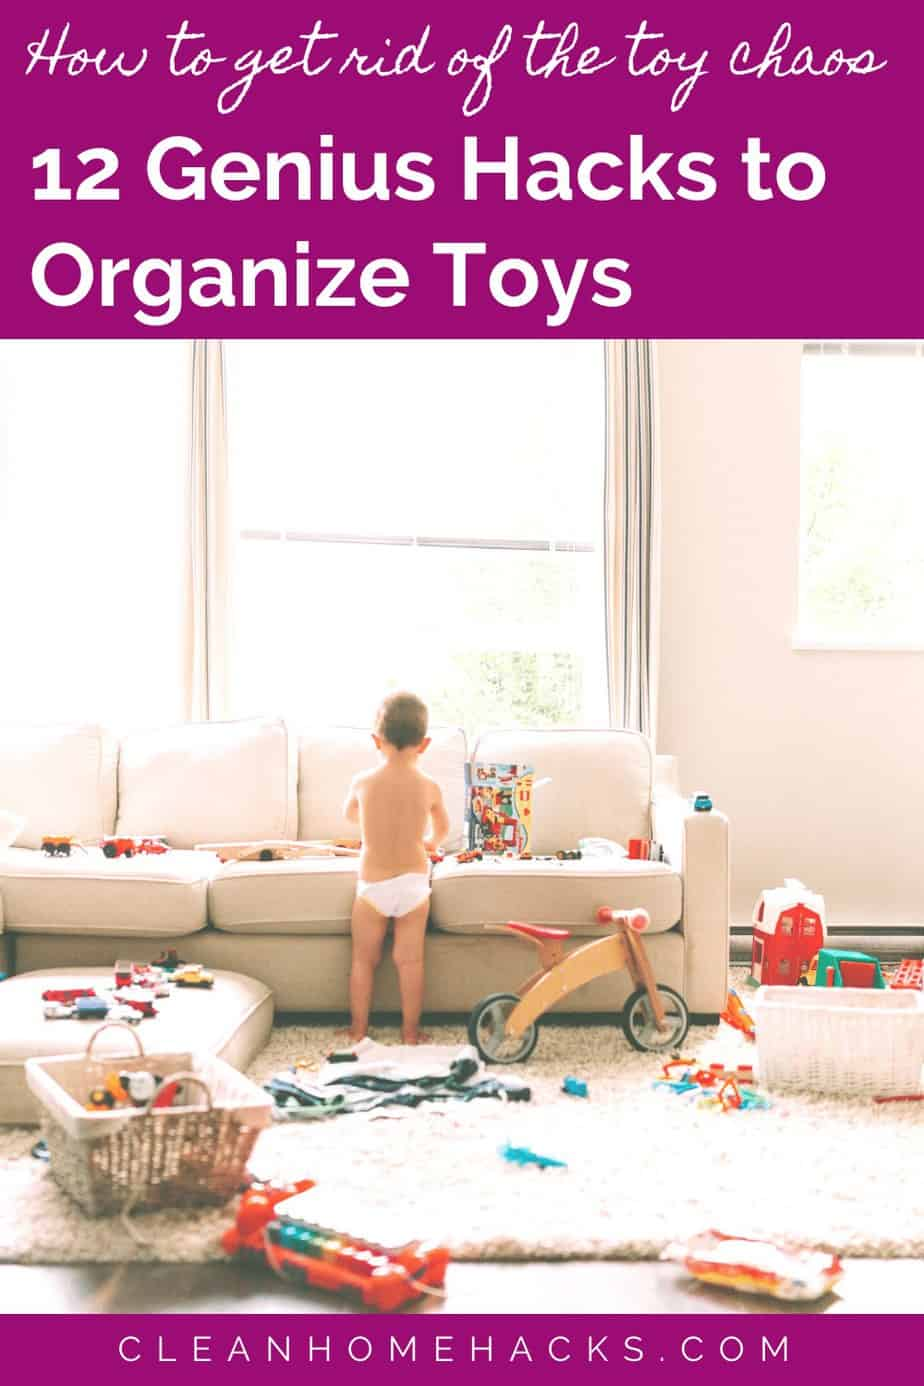 toddler in diapers standing in room with toys strewn all over